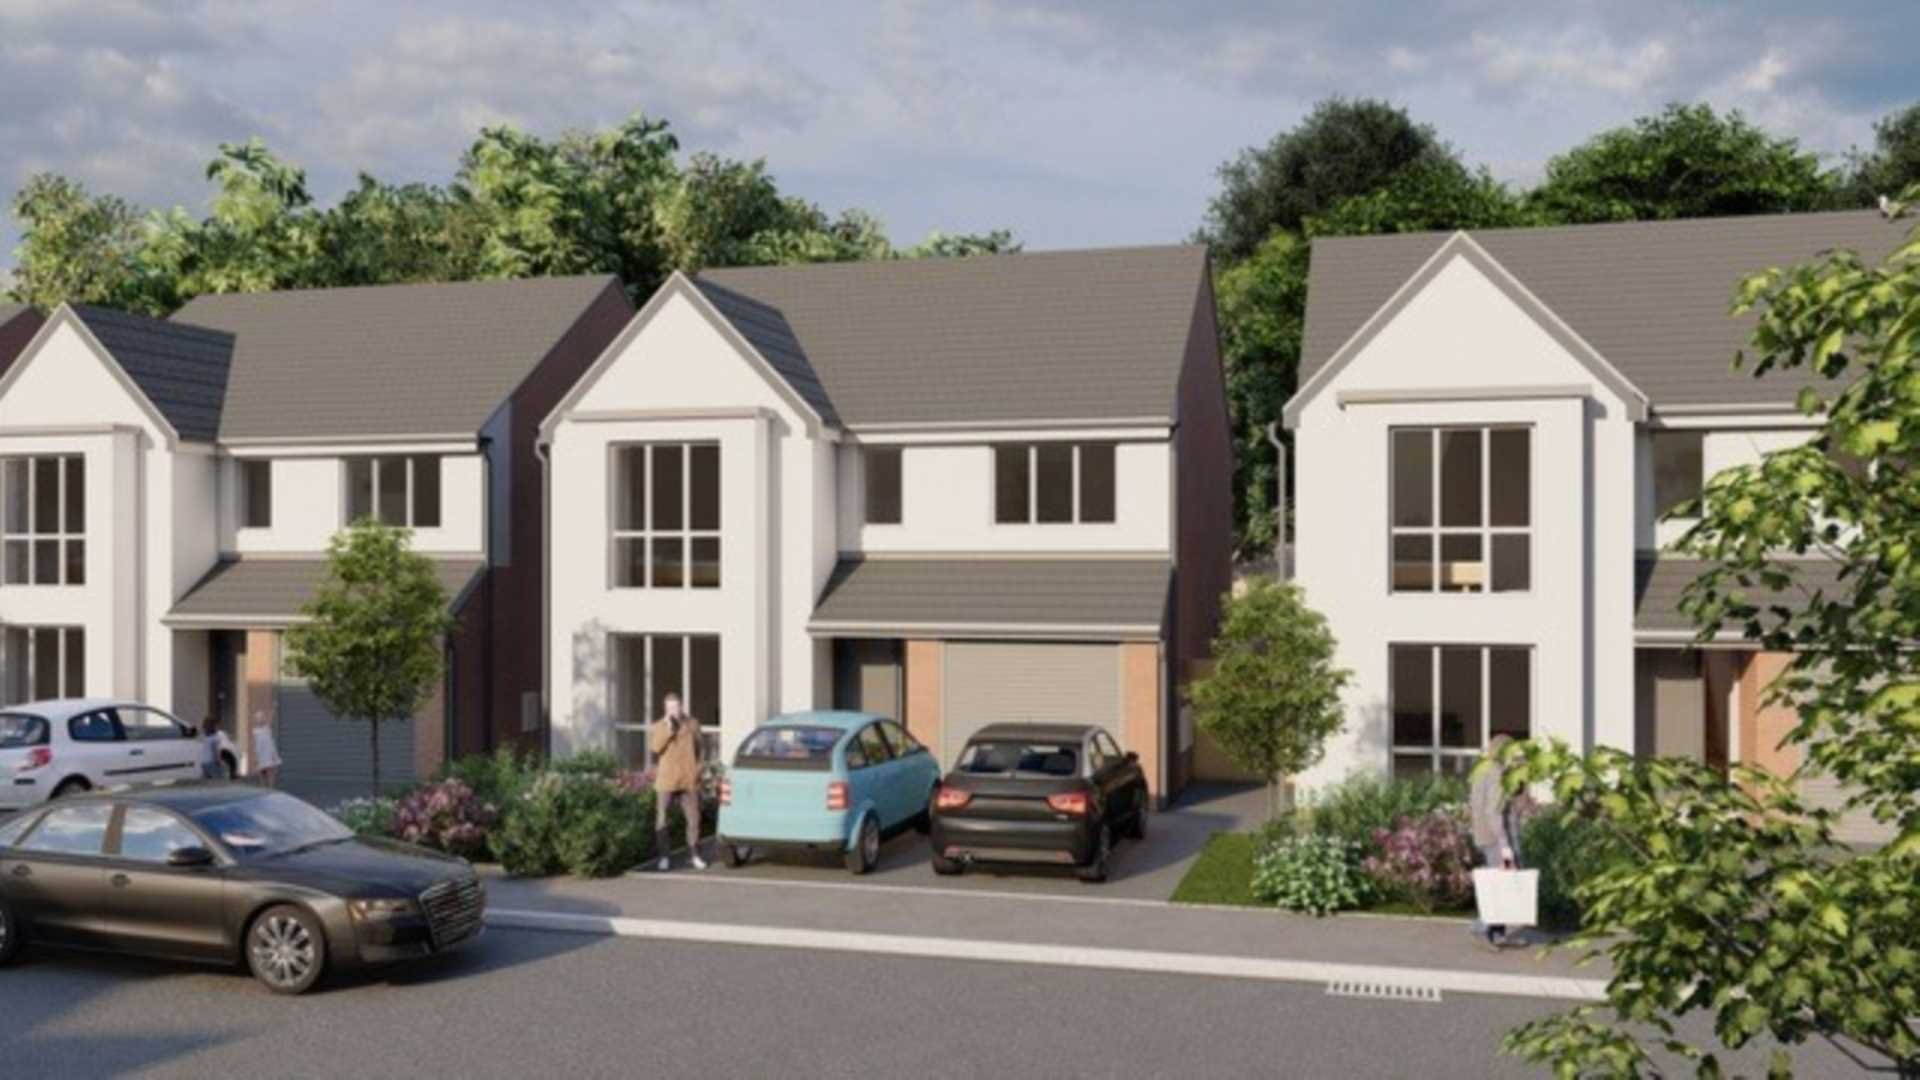 Plot 1 Spencers Lane, Melling, Image 3